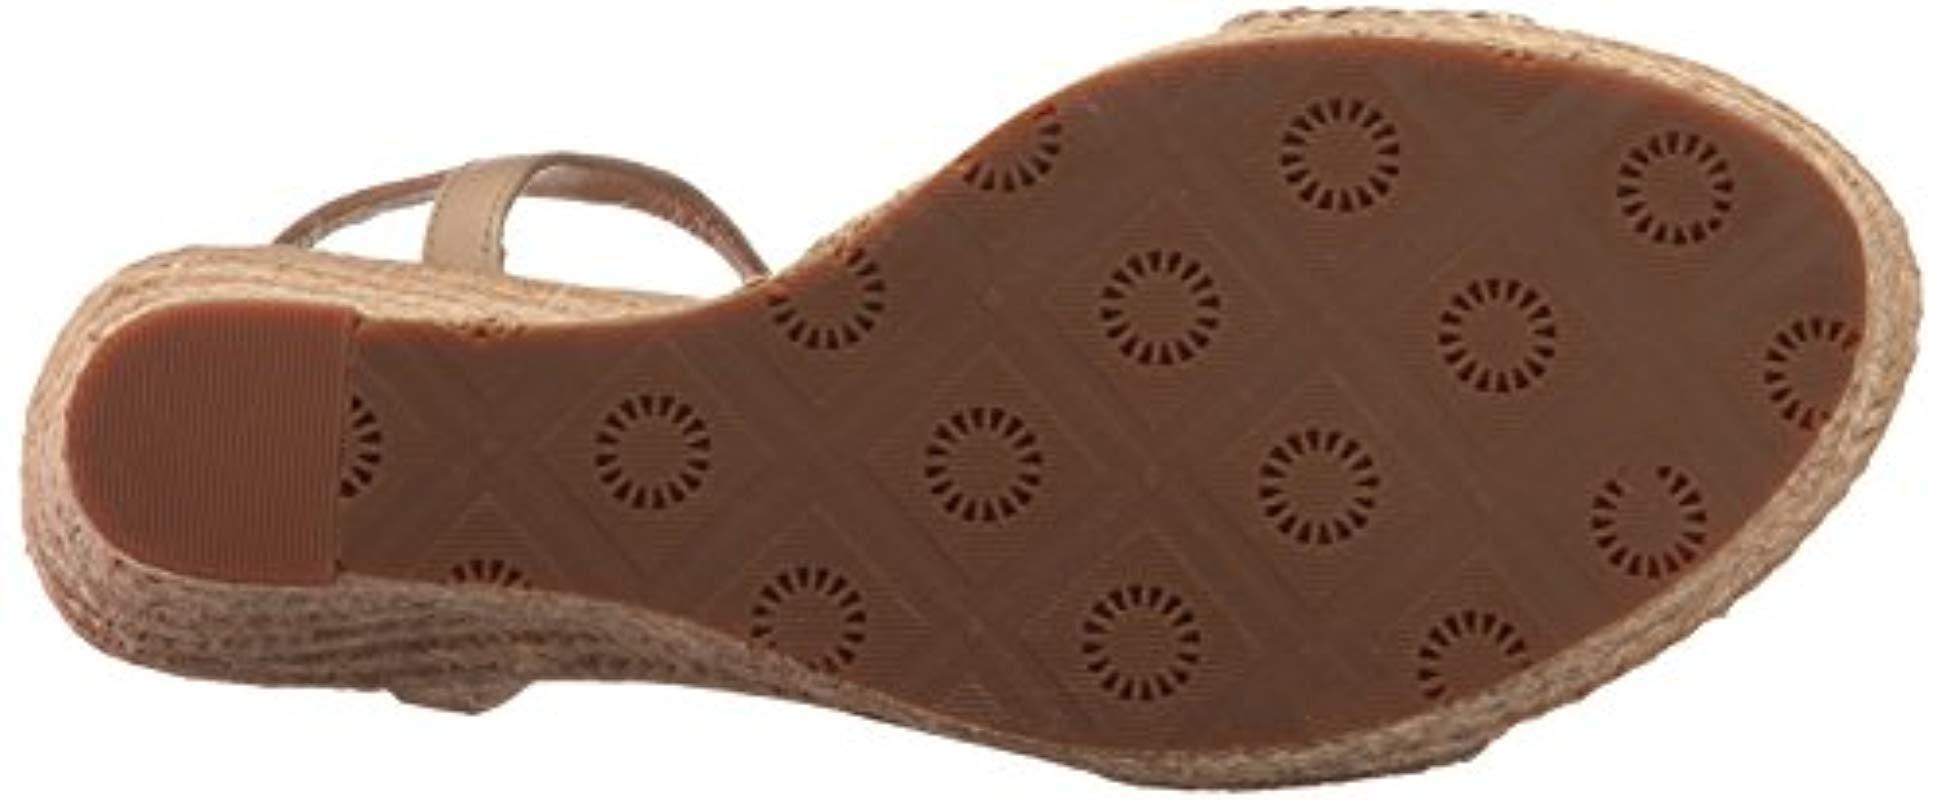 4e6637fc337 Ugg - Multicolor Fitchie Ii Wedge Sandal - Lyst. View fullscreen